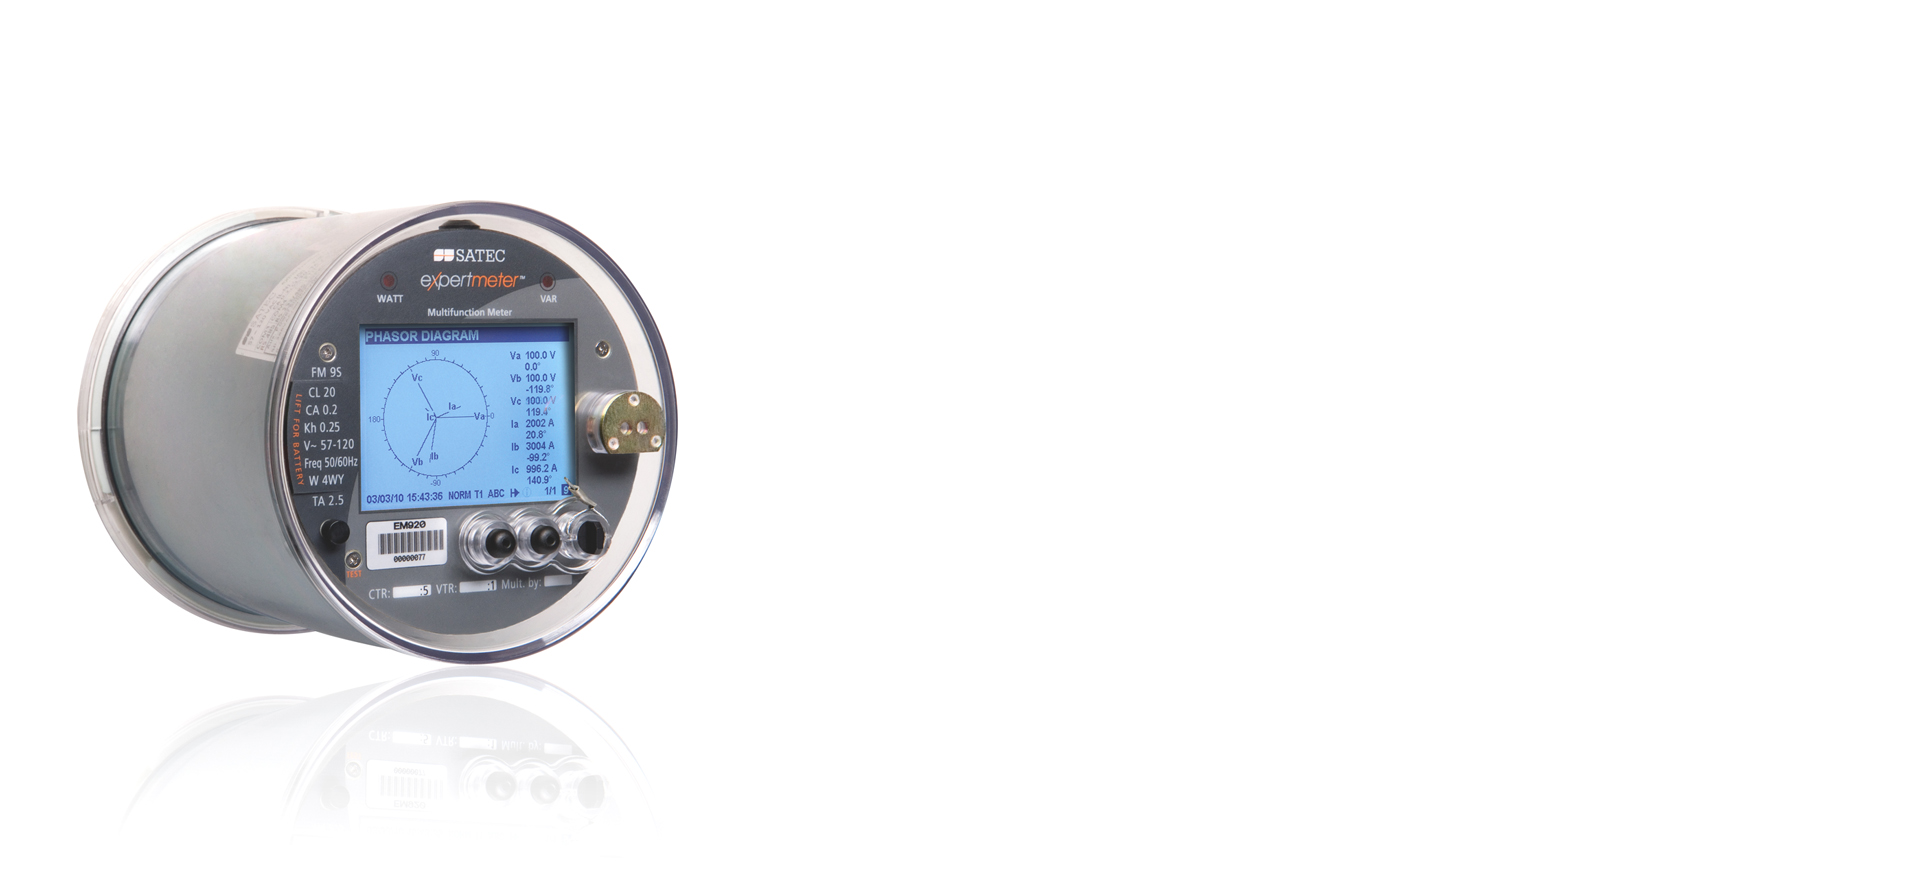 The SATEC Model EM920 eXpertmeter is an advanced energy analyzer in a socket meter with precise measurement and expansion capabilities.